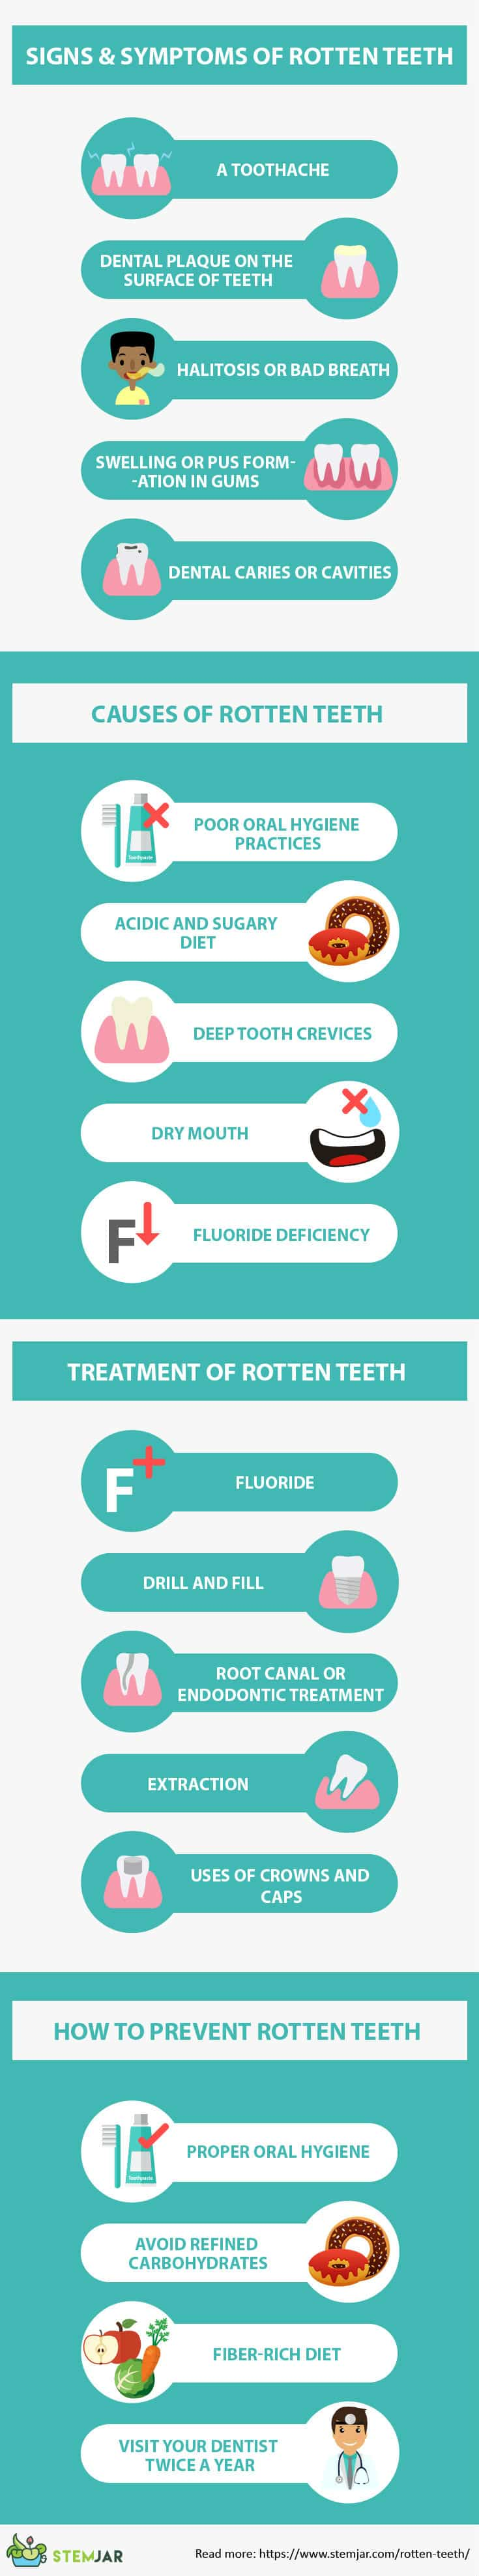 Rotten teeth infographic